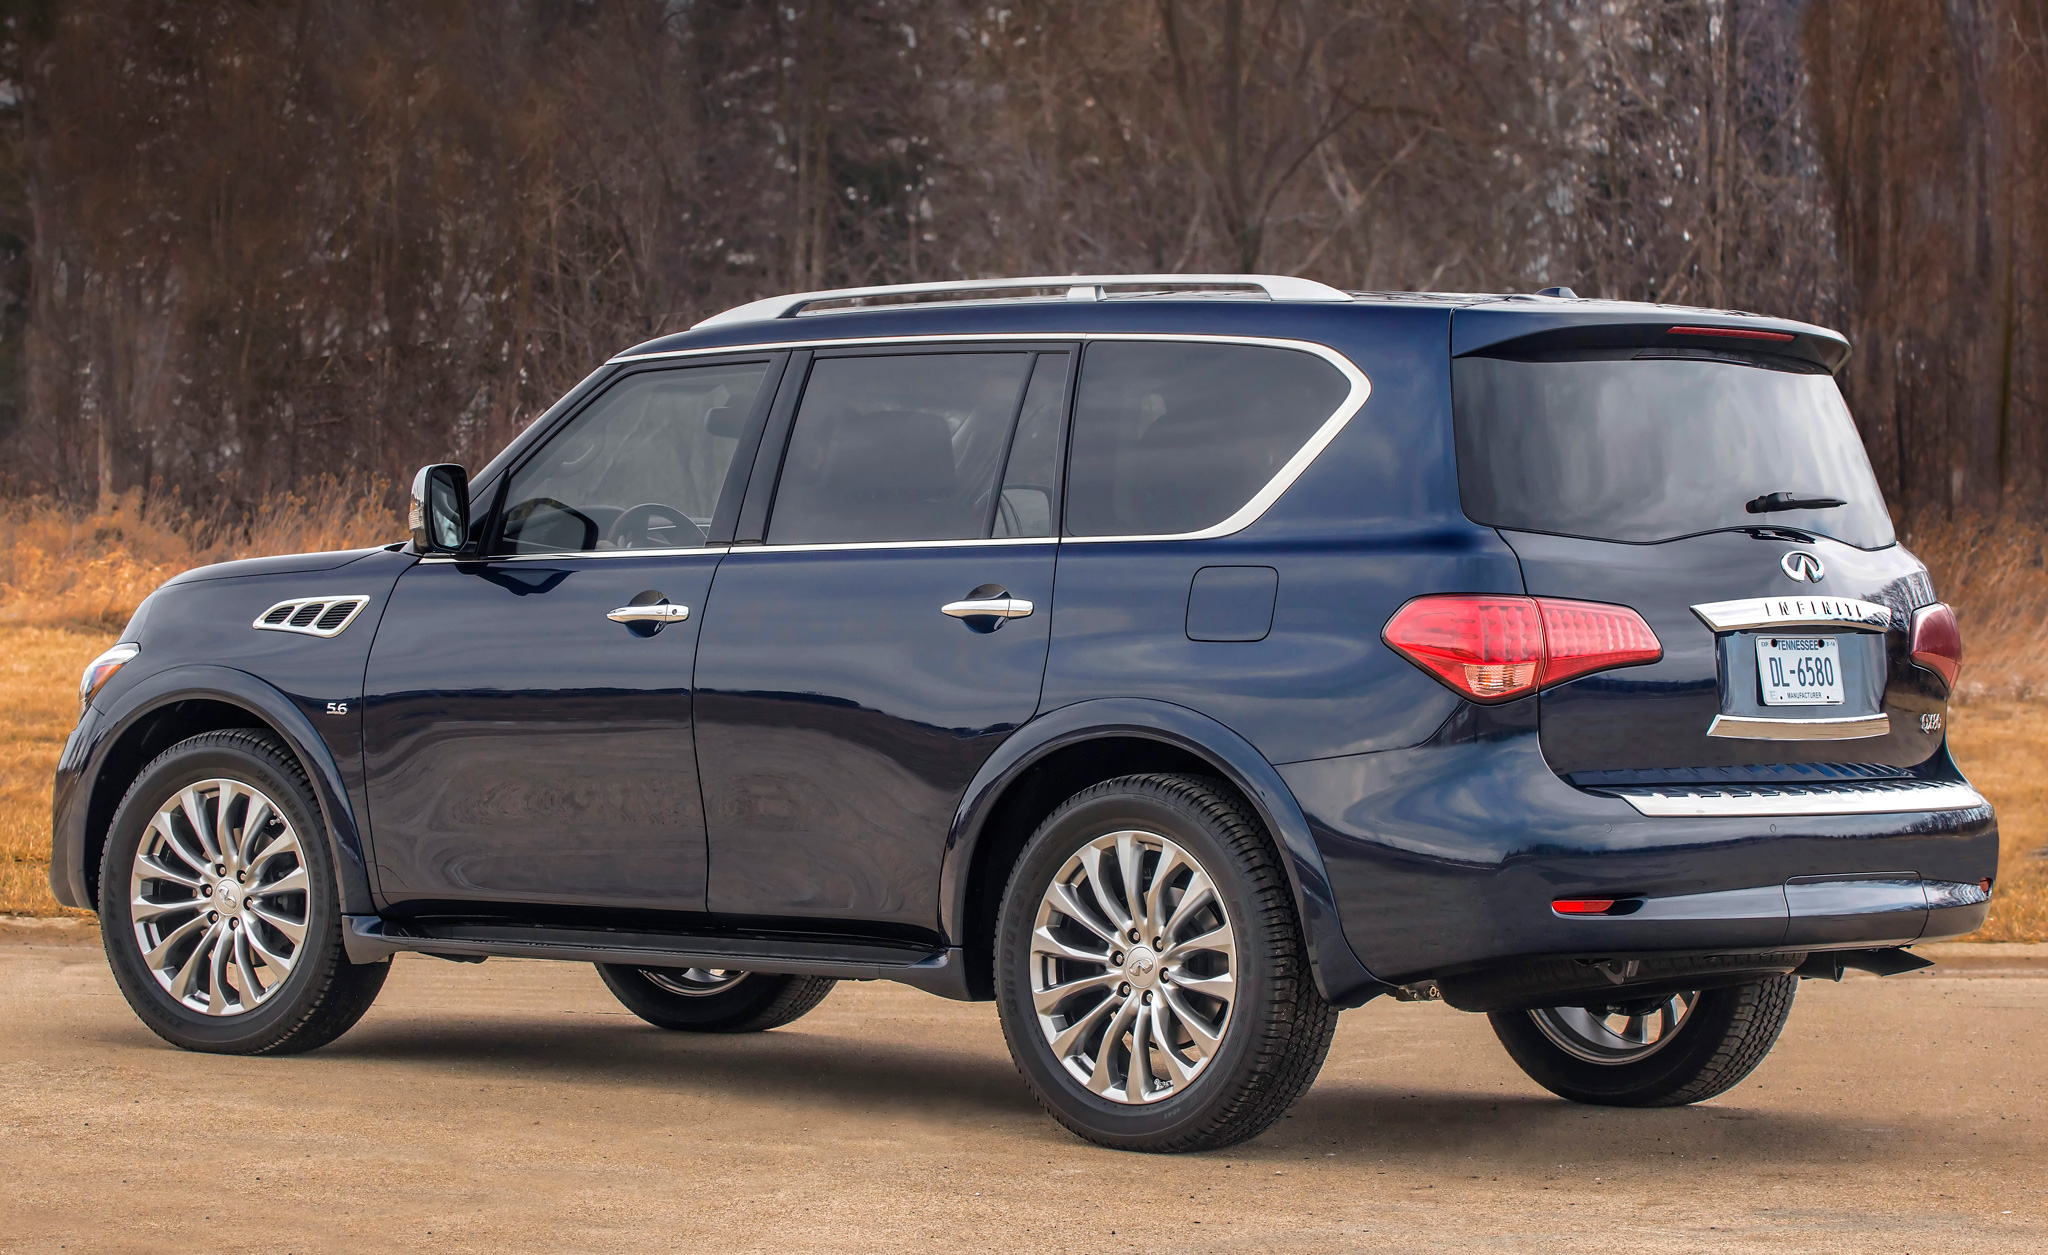 2015-Infiniti-QX80-rear-side-view.jpg